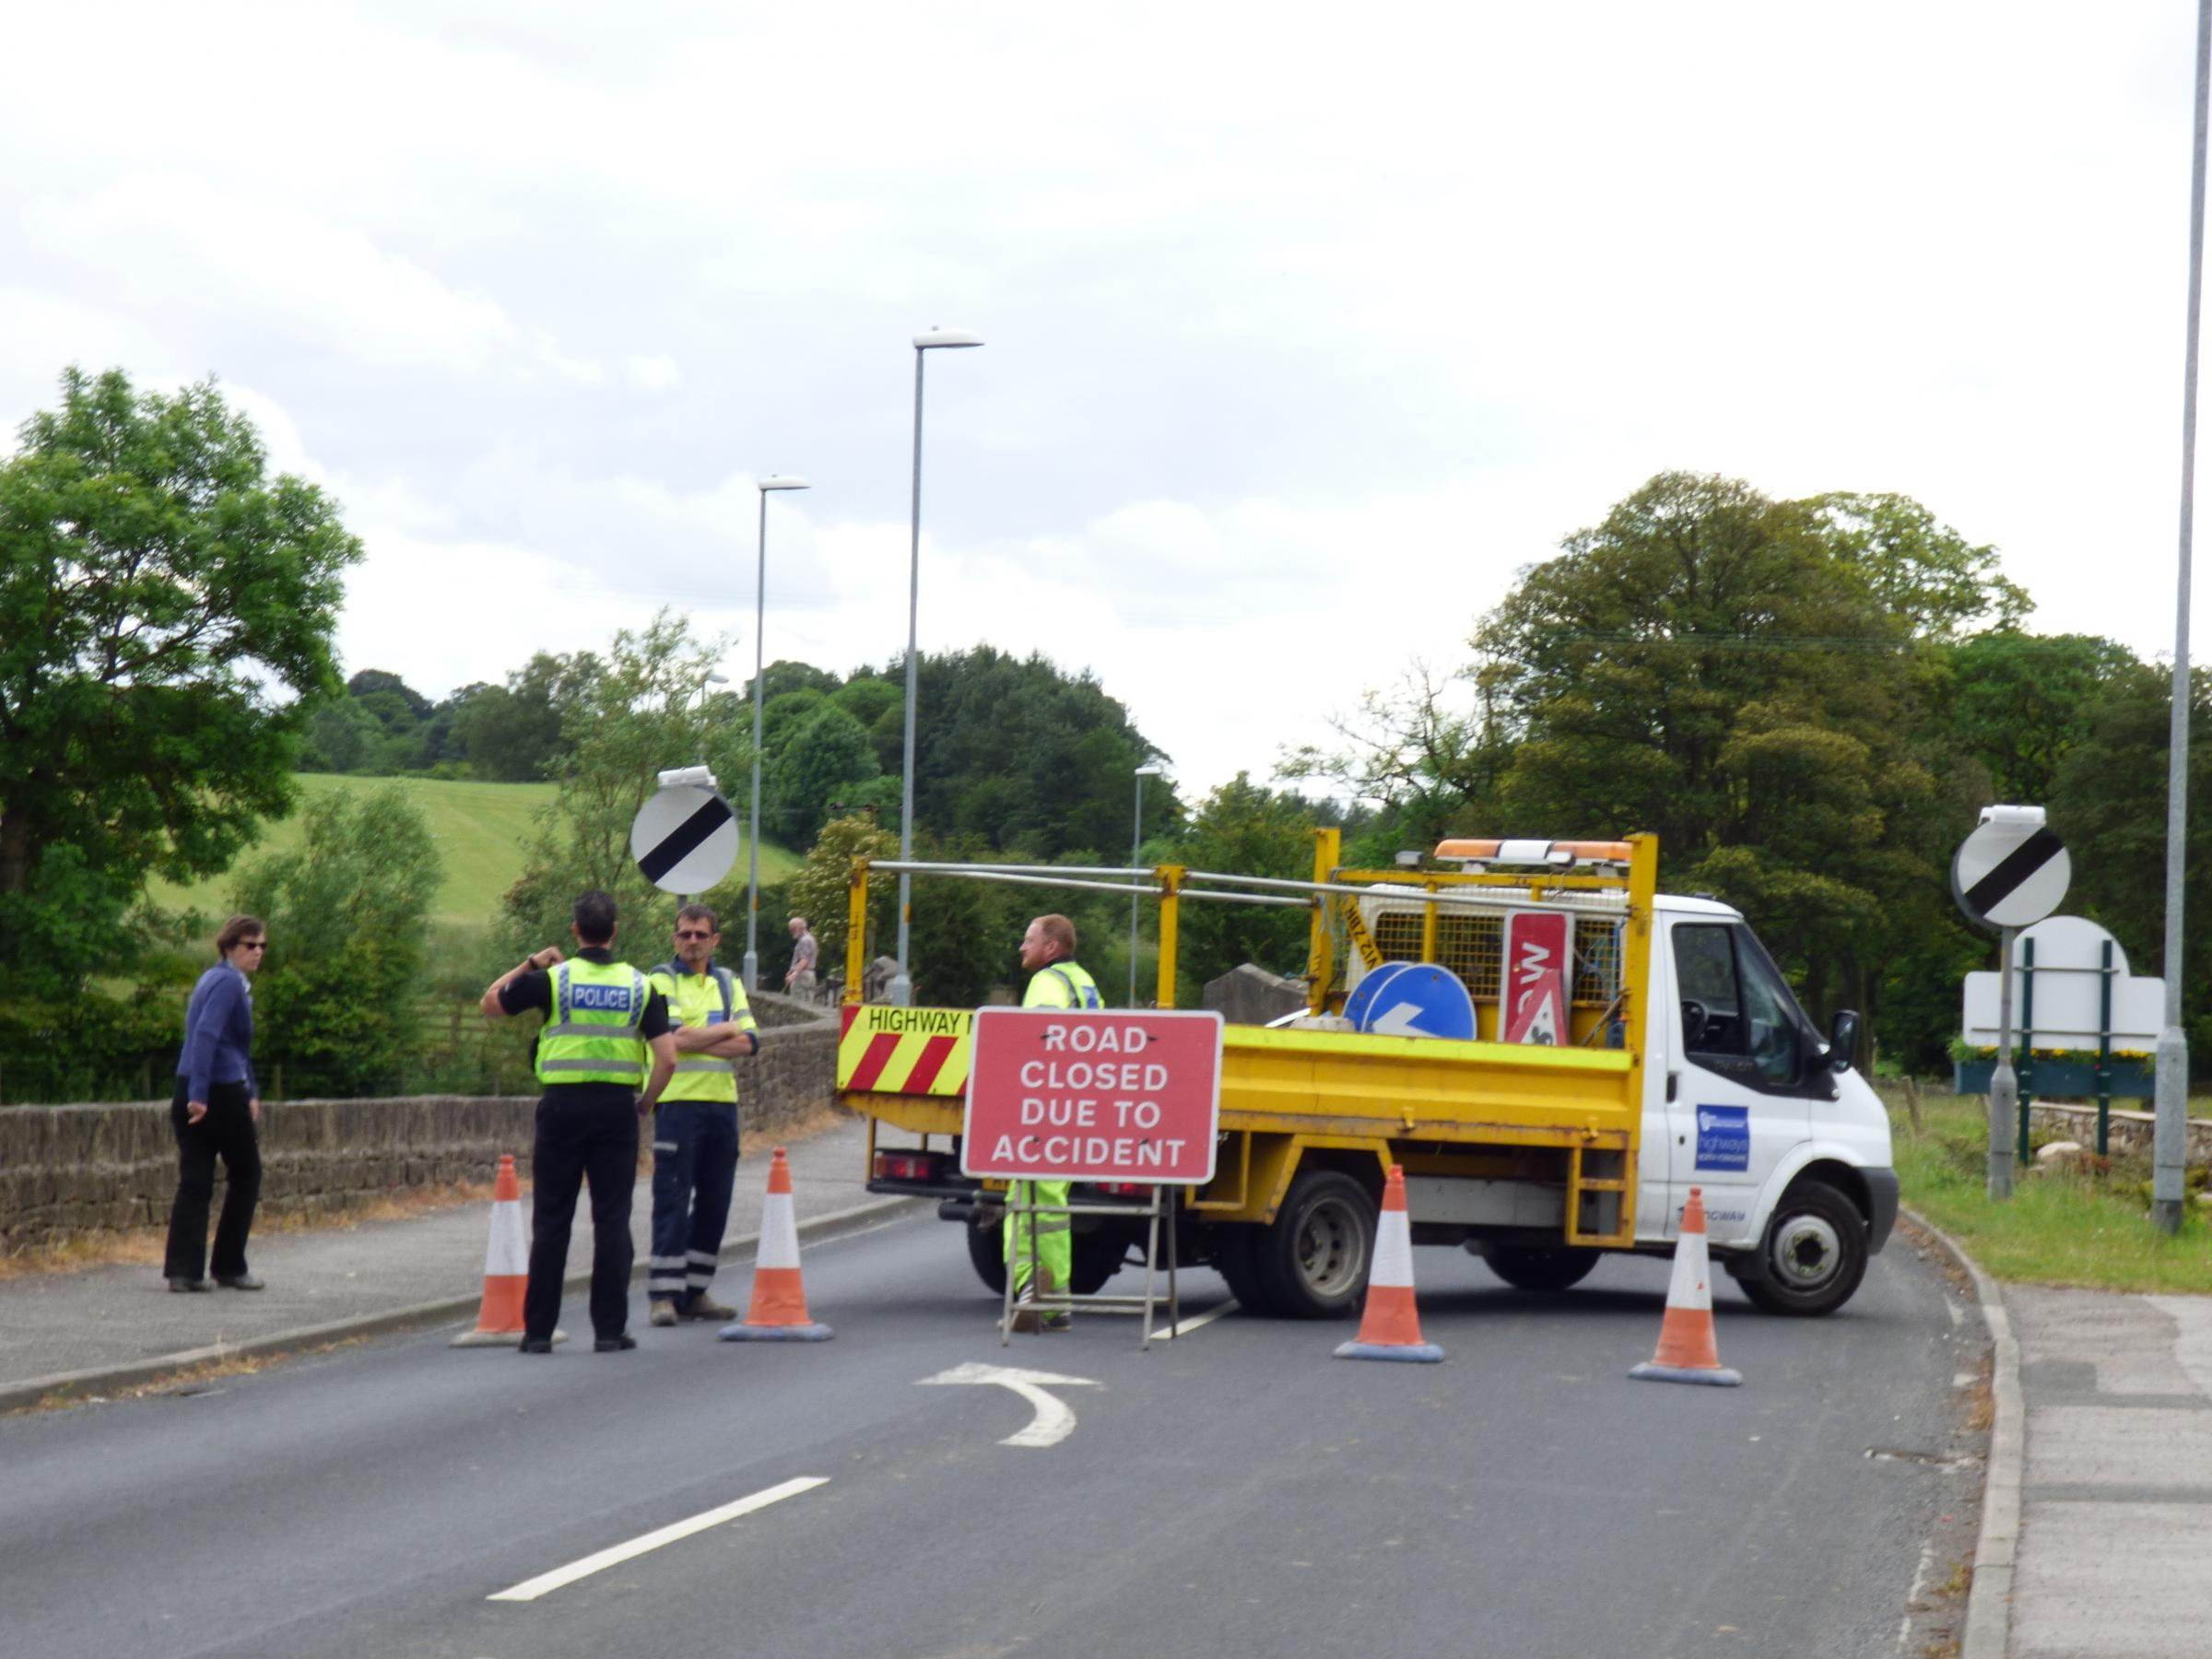 Skipton Road was closed for several hours after the crash